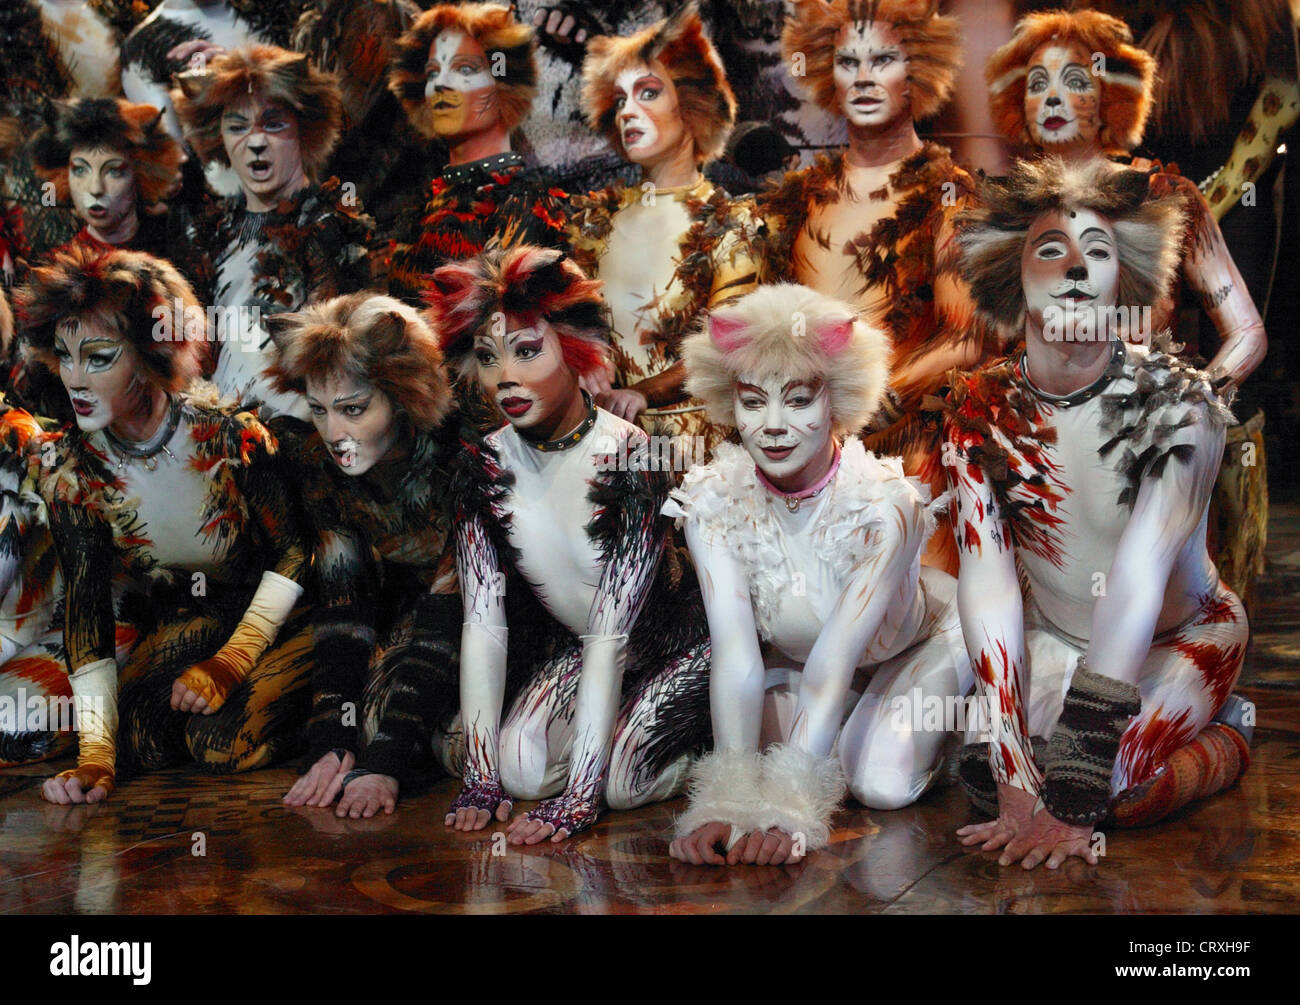 Musical CATS at the CAPITOL theater in Duesseldorf - Stock Image